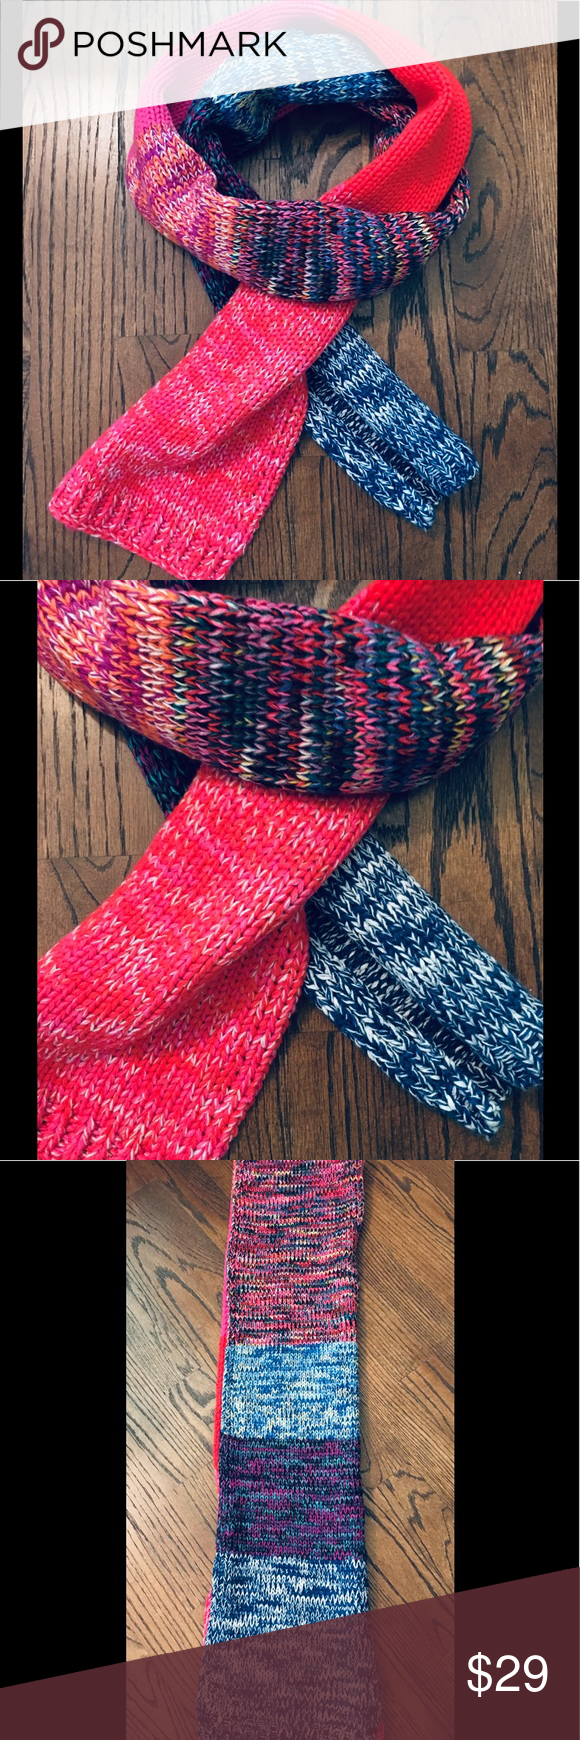 Gap oversized knit scarf Pretty colors of one side red tones and the other side  Gap oversized knit scarf Pretty colors of one side red tones and the other side  Gap over...